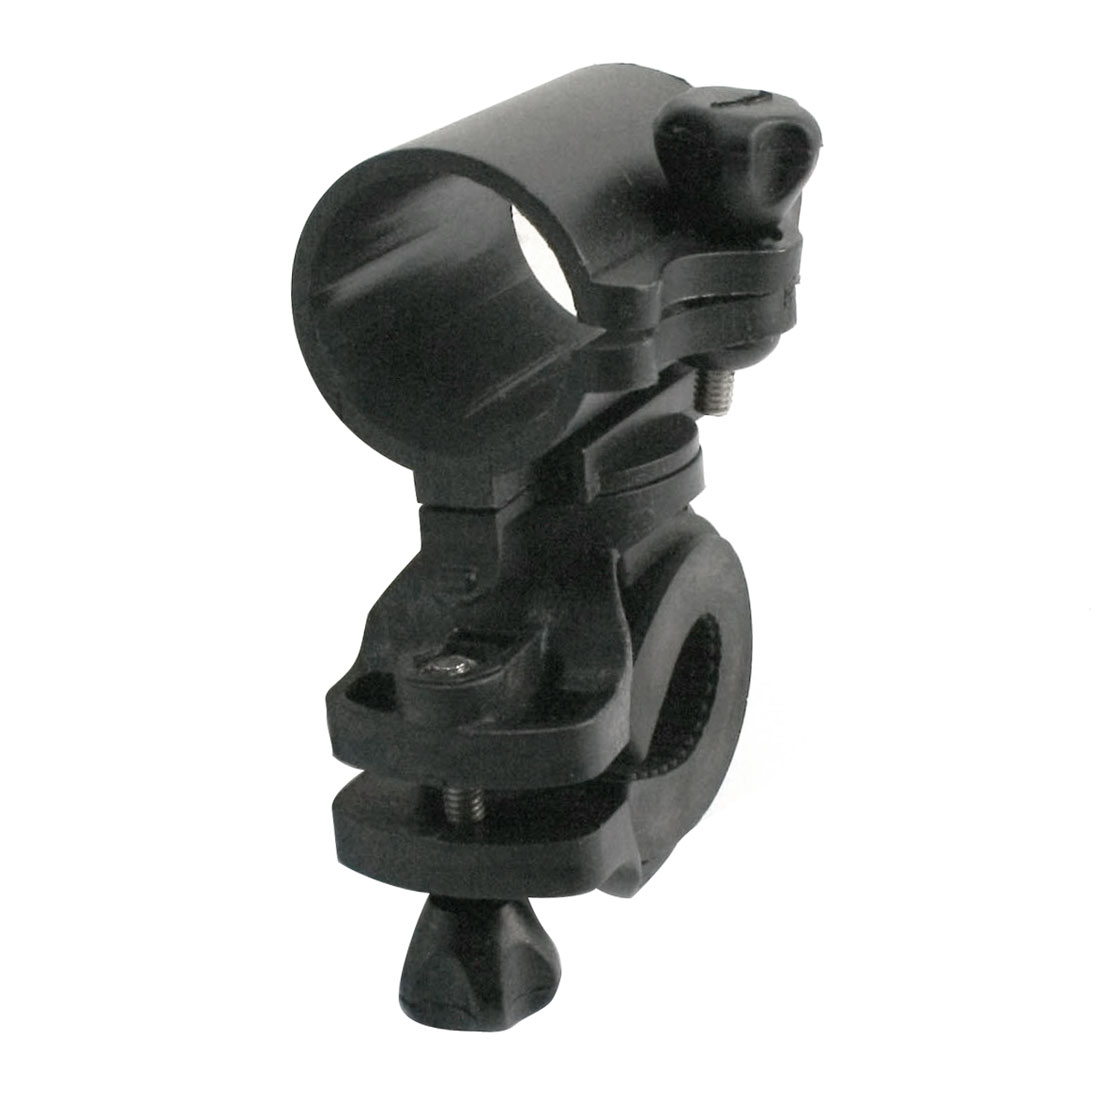 Bicycle Outdoor Black Flashlight Torch Mounting Holder Rack Clamp